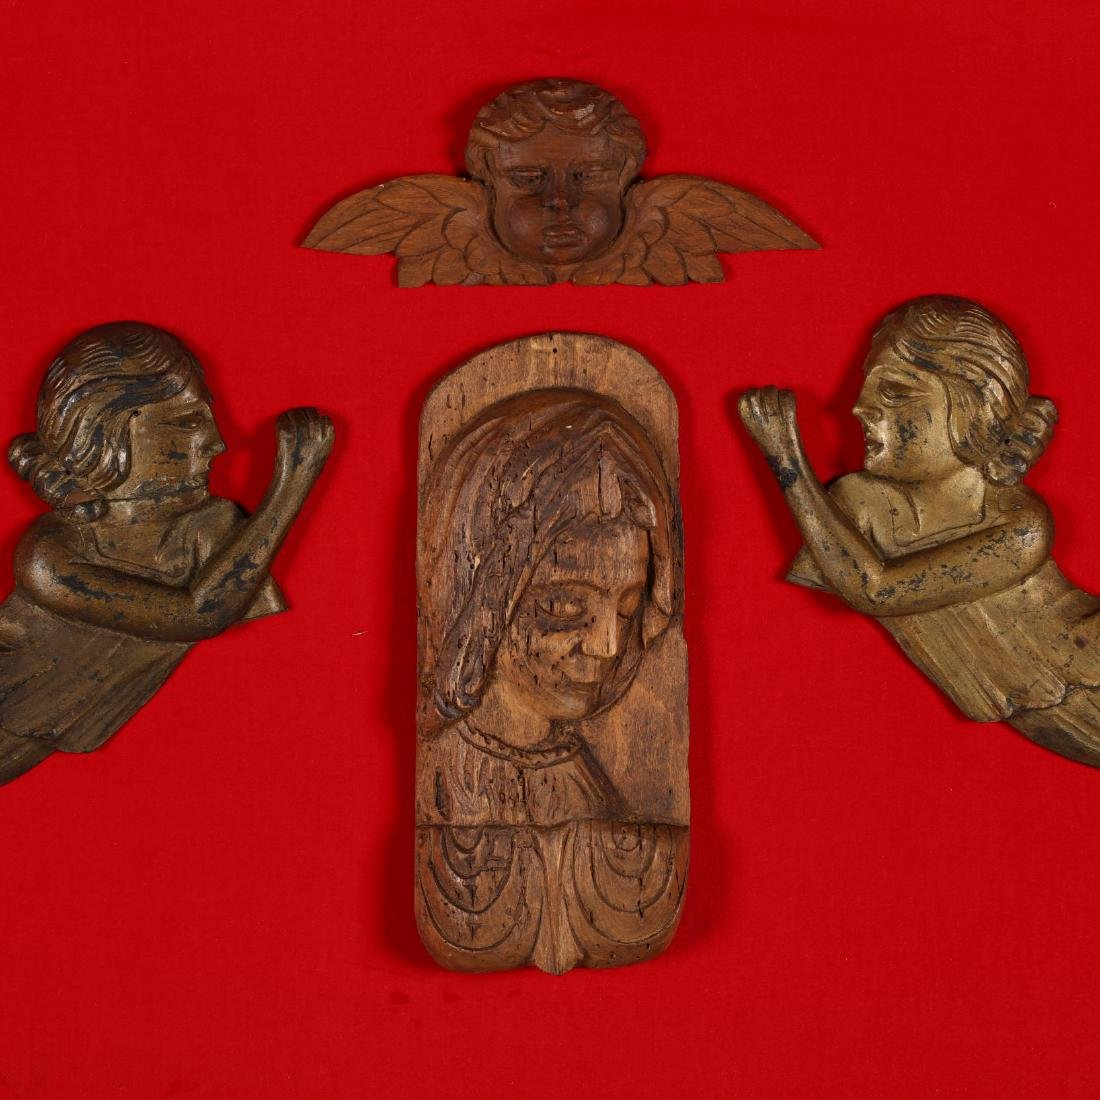 Framed Relief Wall Hanging with Devotional Subjects - 2